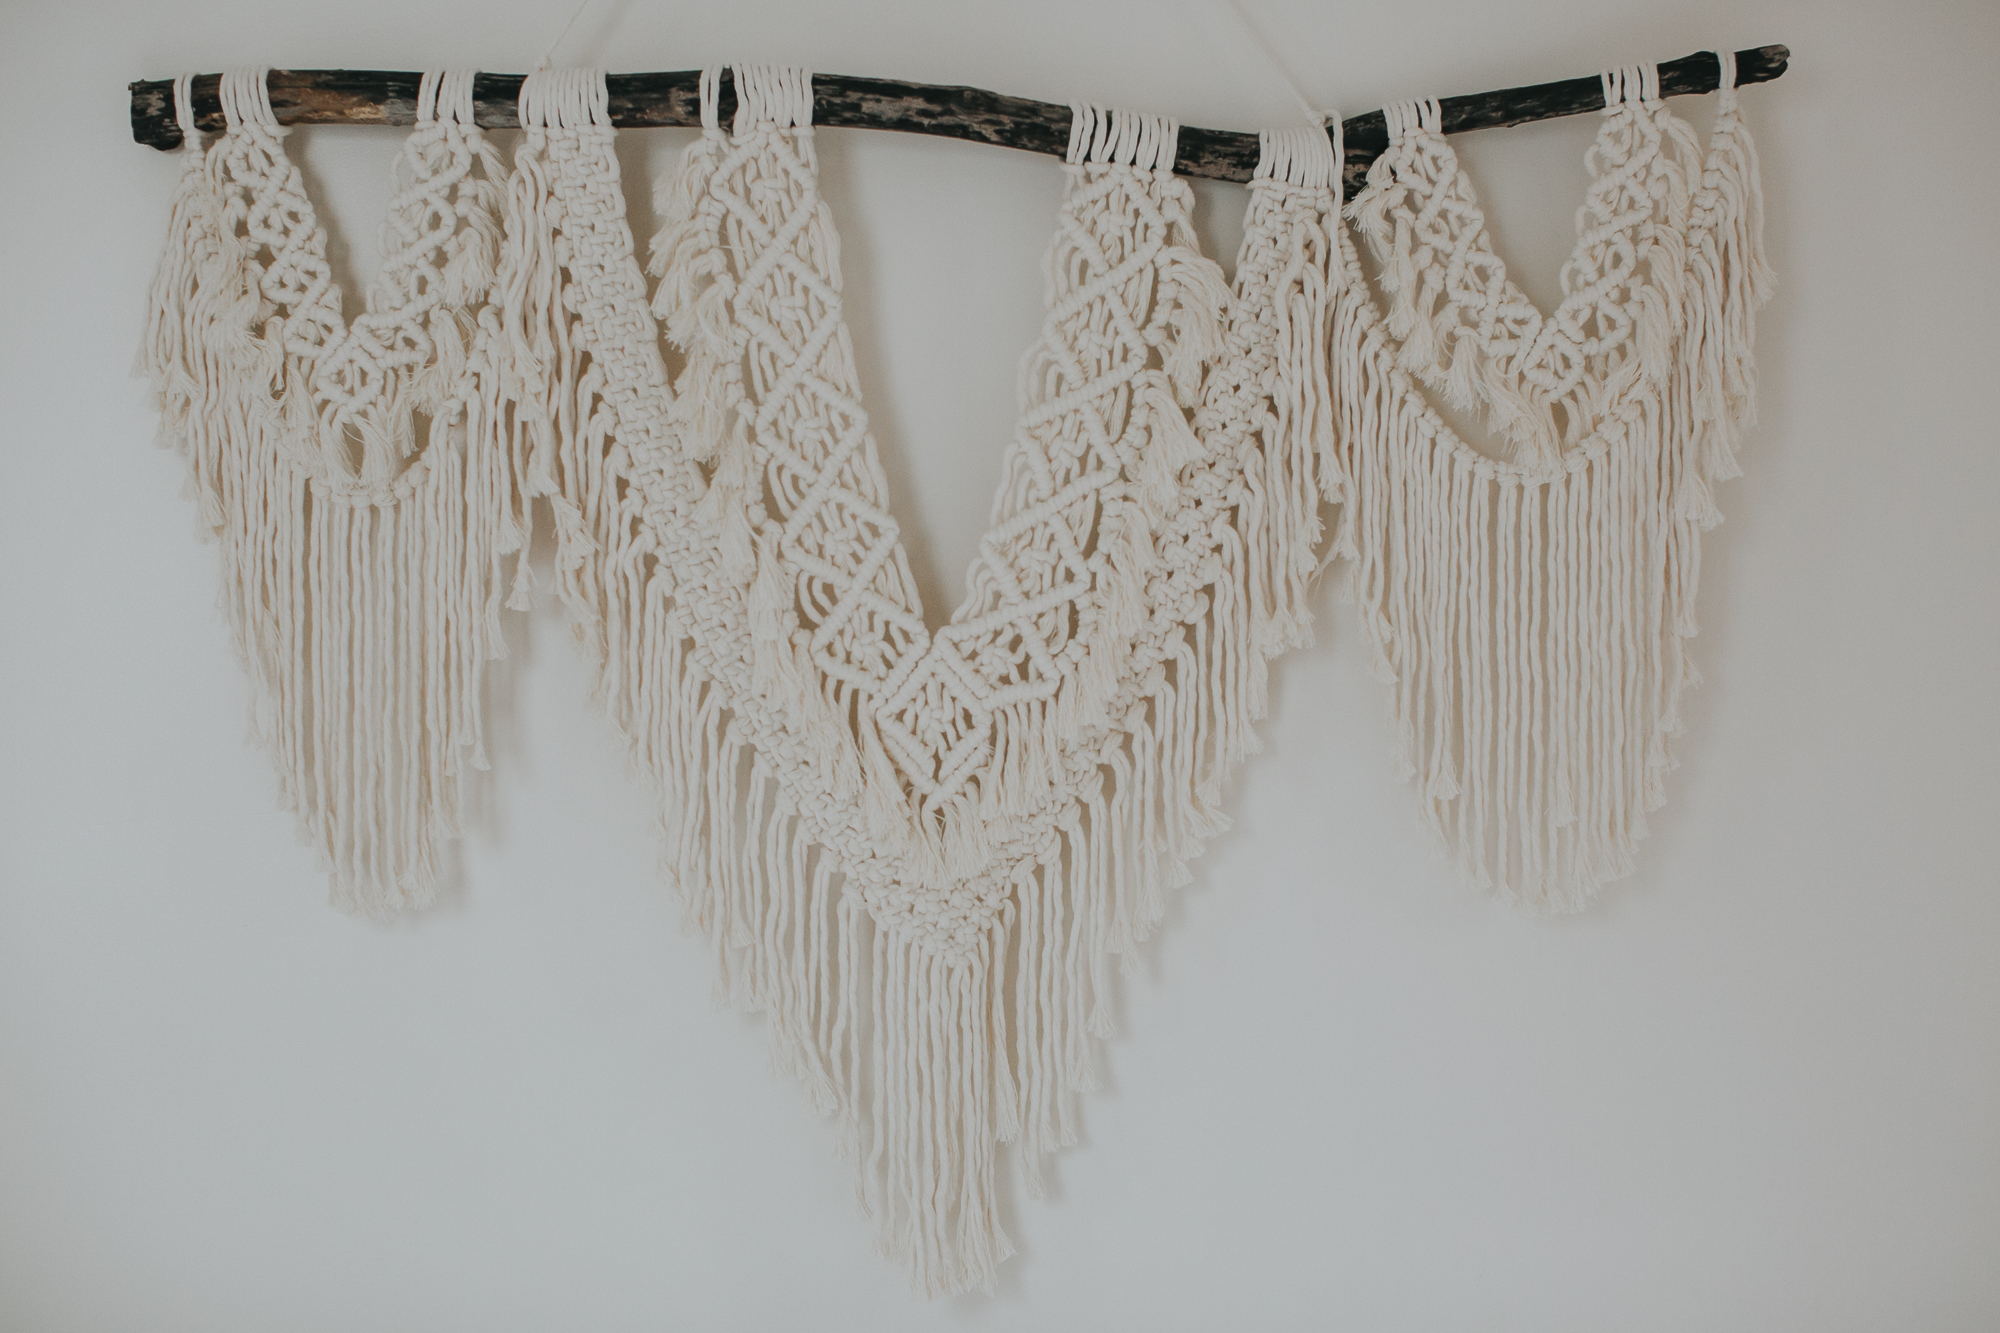 Shop this macrame wall hanging  here .